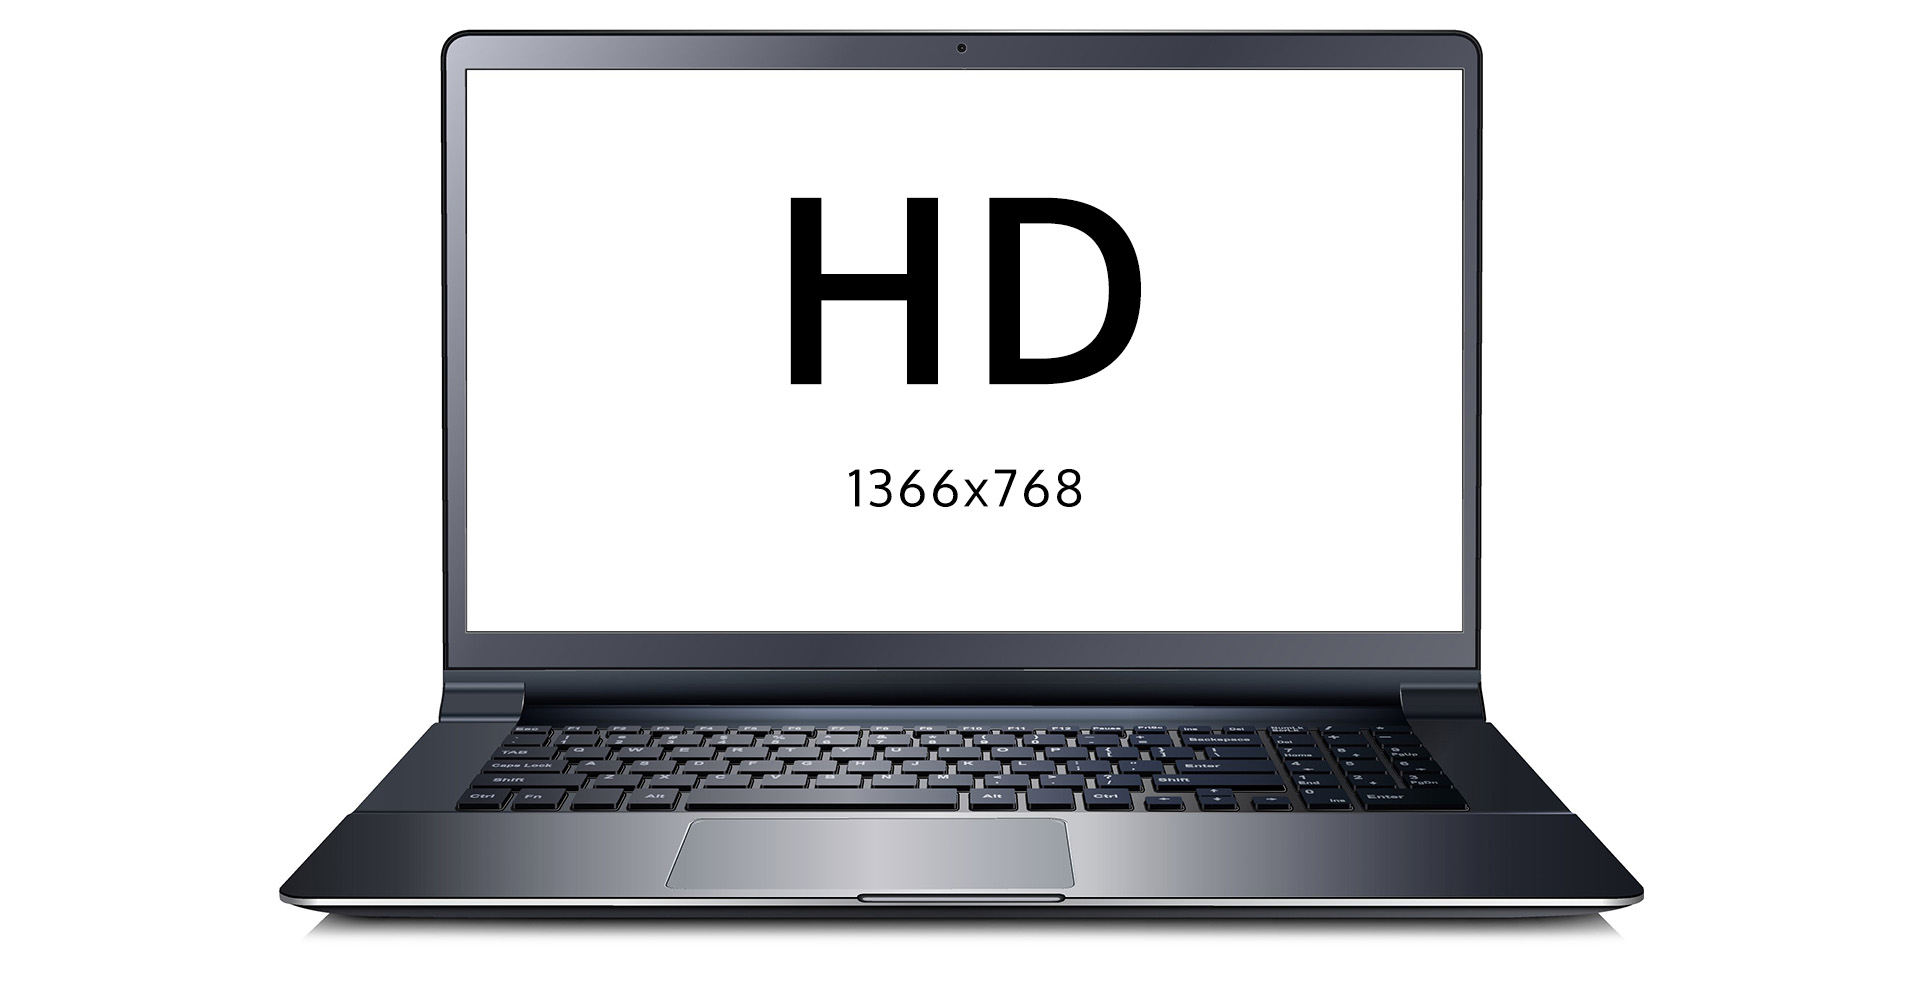 Fujitsu LifeBook A357 (S26391K425V300) 16 GB RAM/ 512 GB SSD/ 1TB HDD/ Windows 10 Pro                             HD 1366x768 resolutsioon